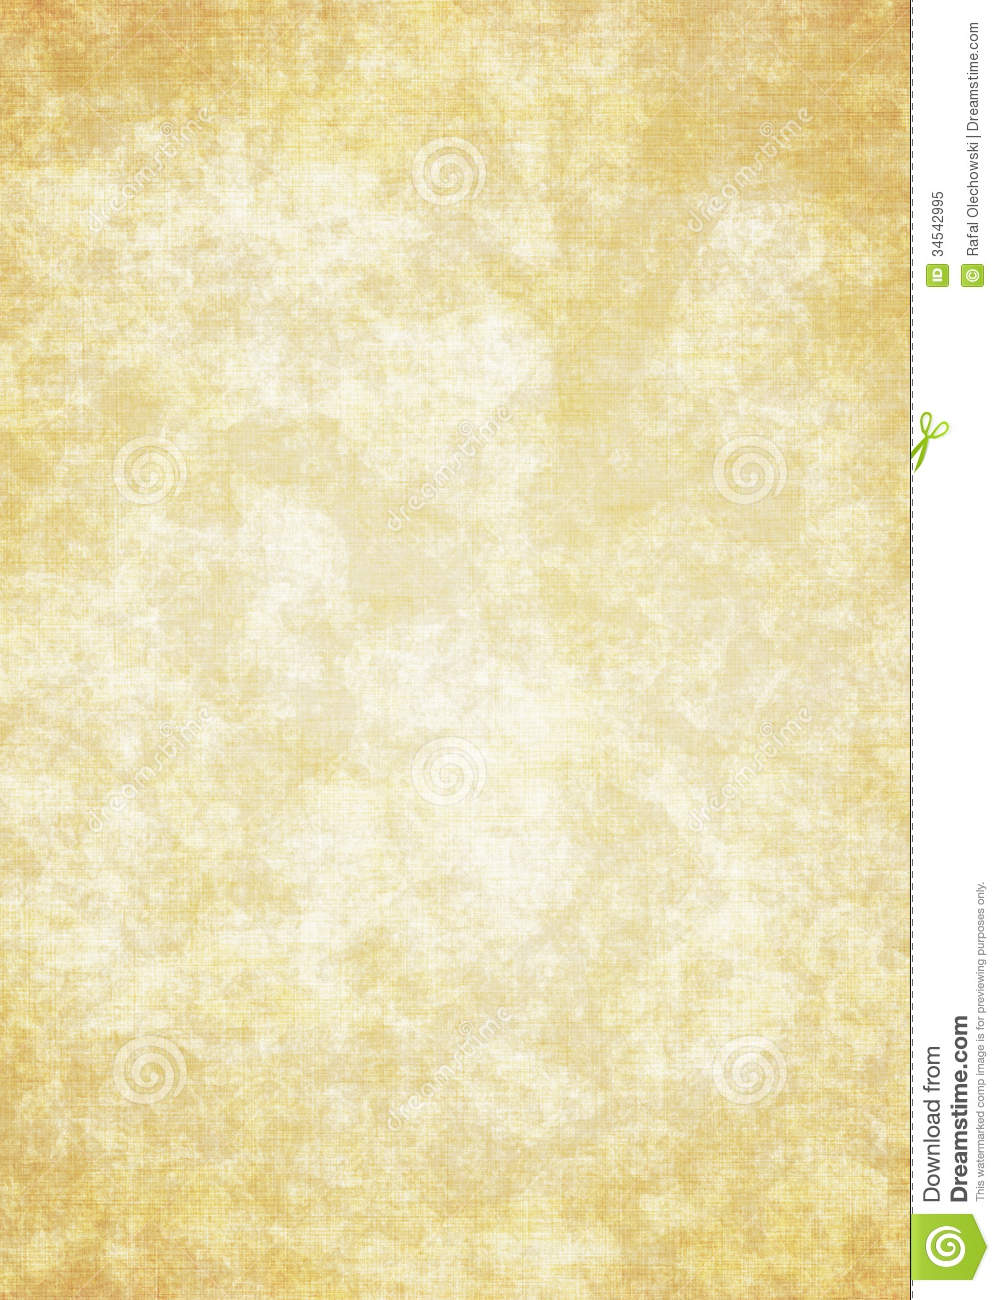 Old paper template texture stock illustration. Illustration of page ...